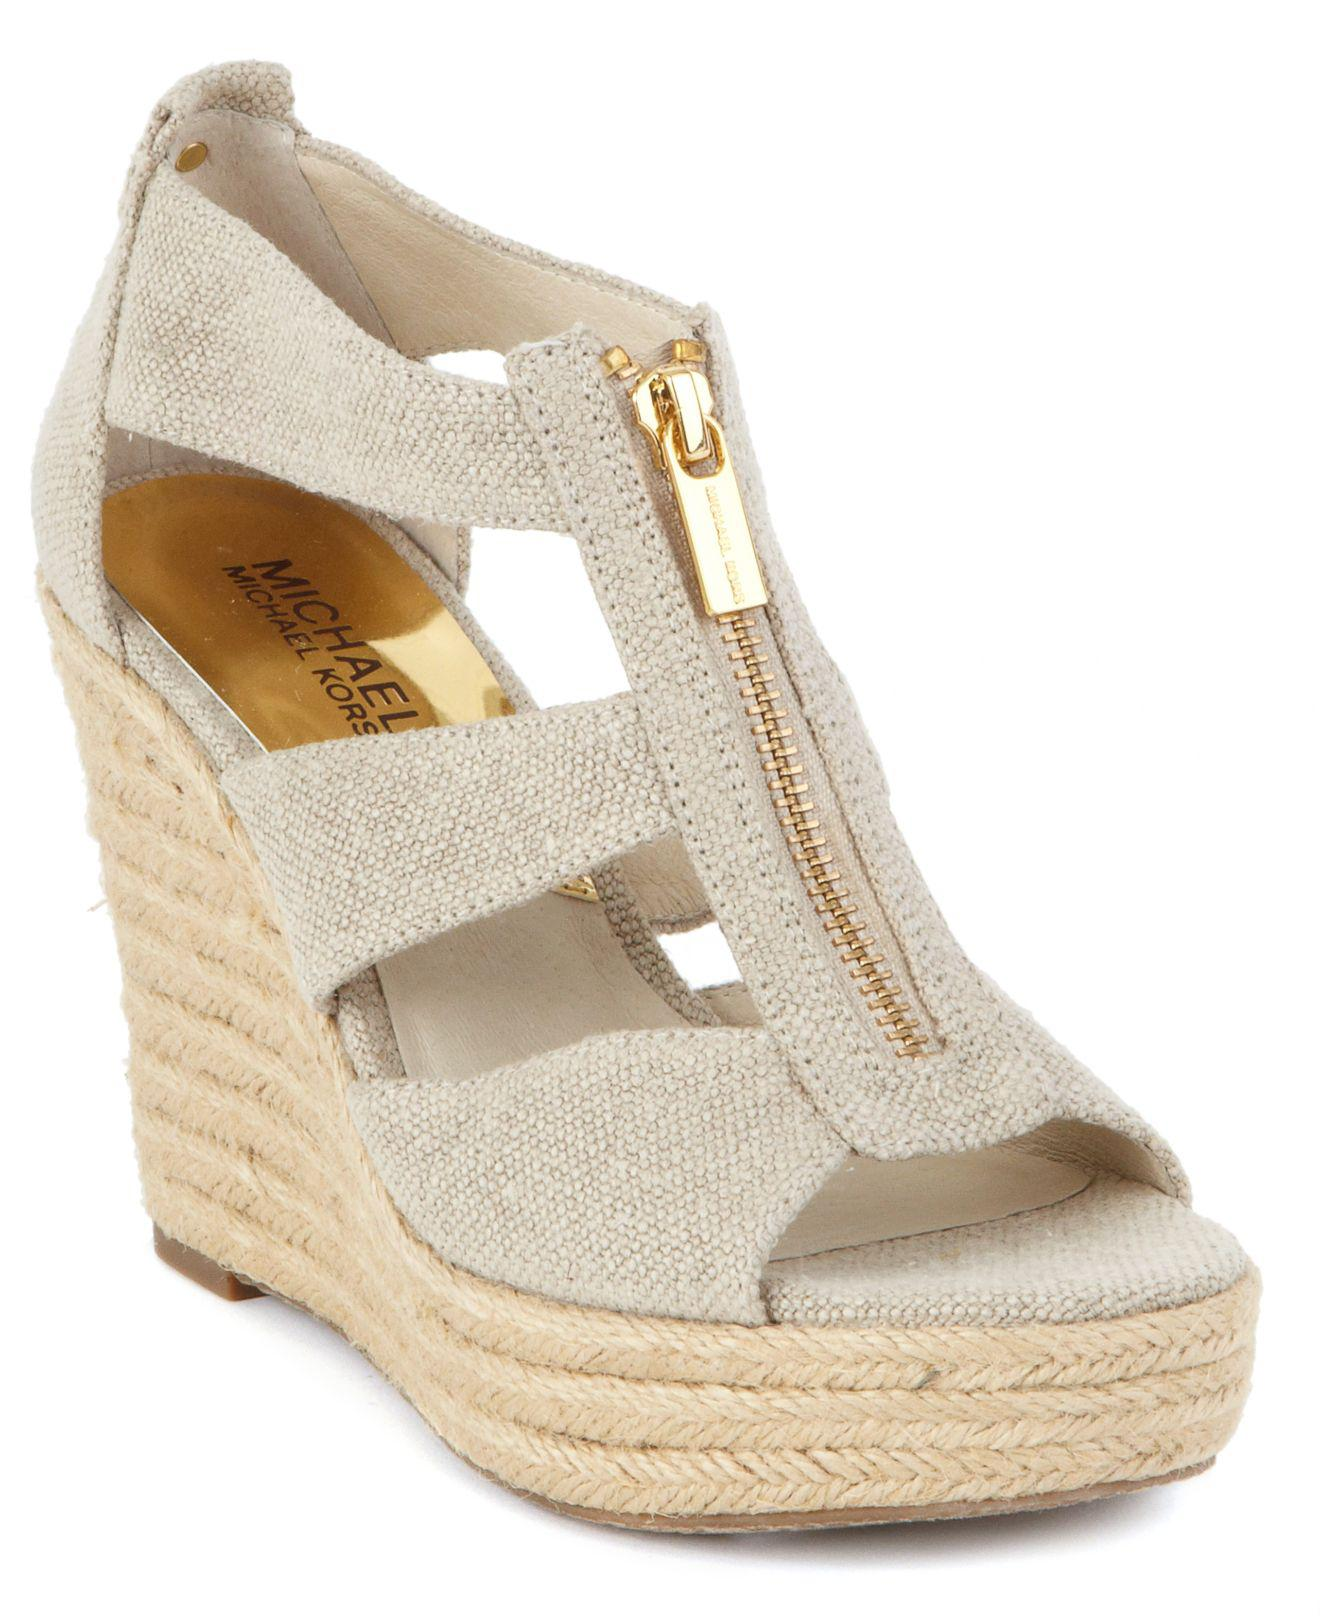 b614d621142 Michael Kors Damita Canvas Wedge Sandals in Natural - Save 55% - Lyst